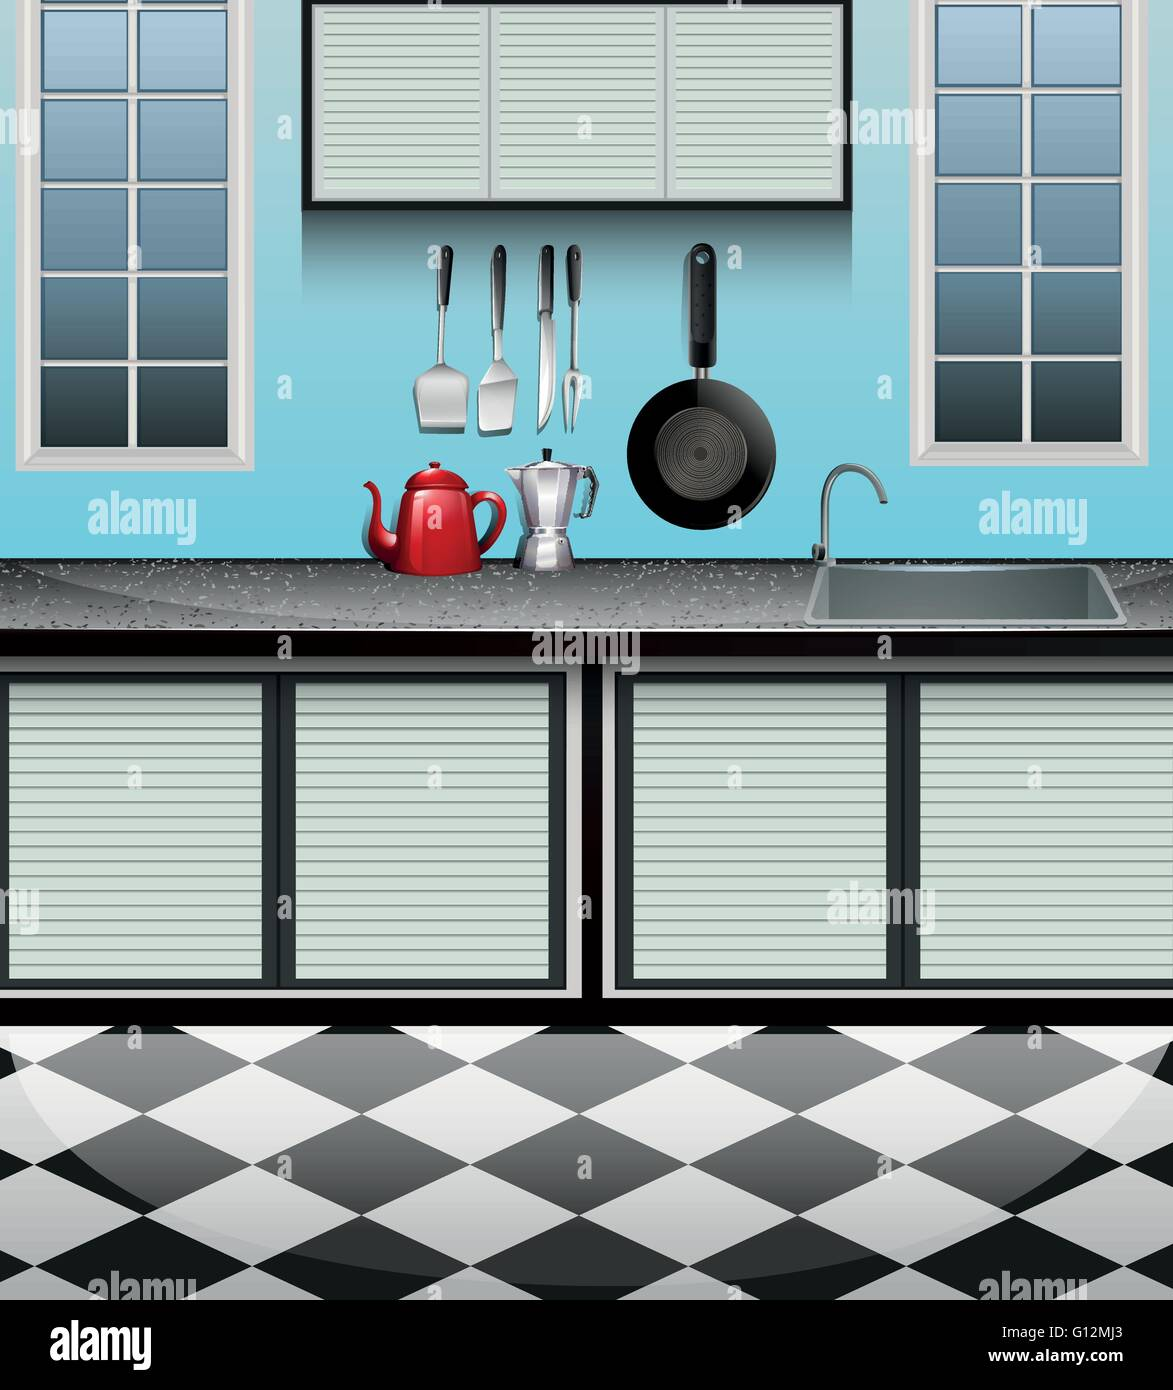 Kitchen Cabinet Stock Vector Images - Alamy